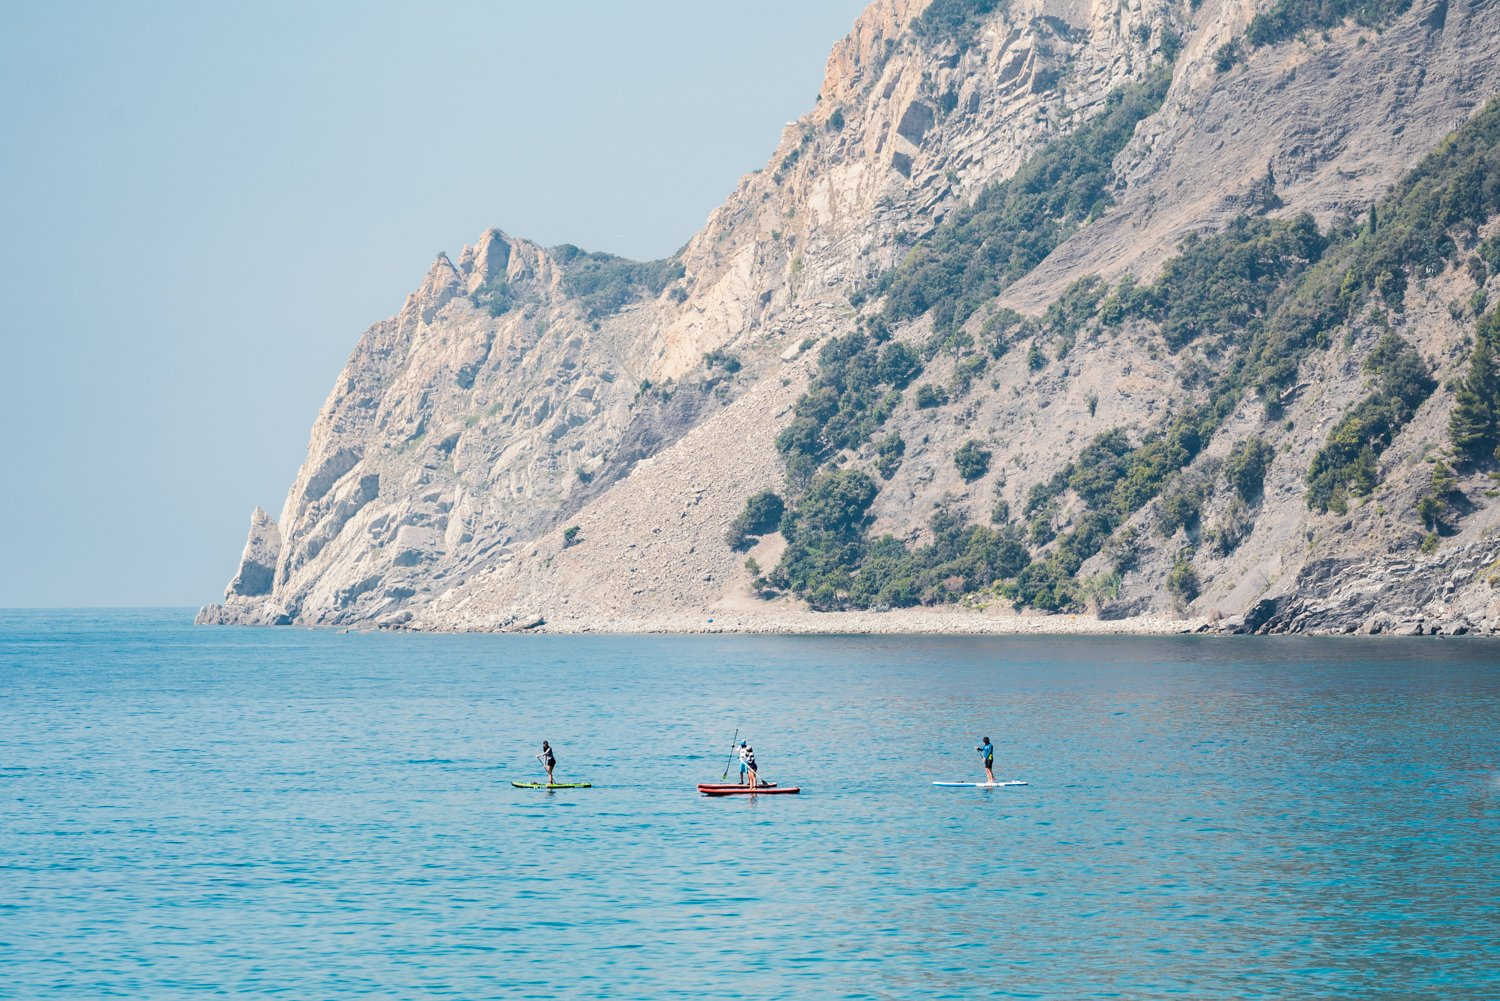 Four people paddling on board alongside mountains in Cinque Terre